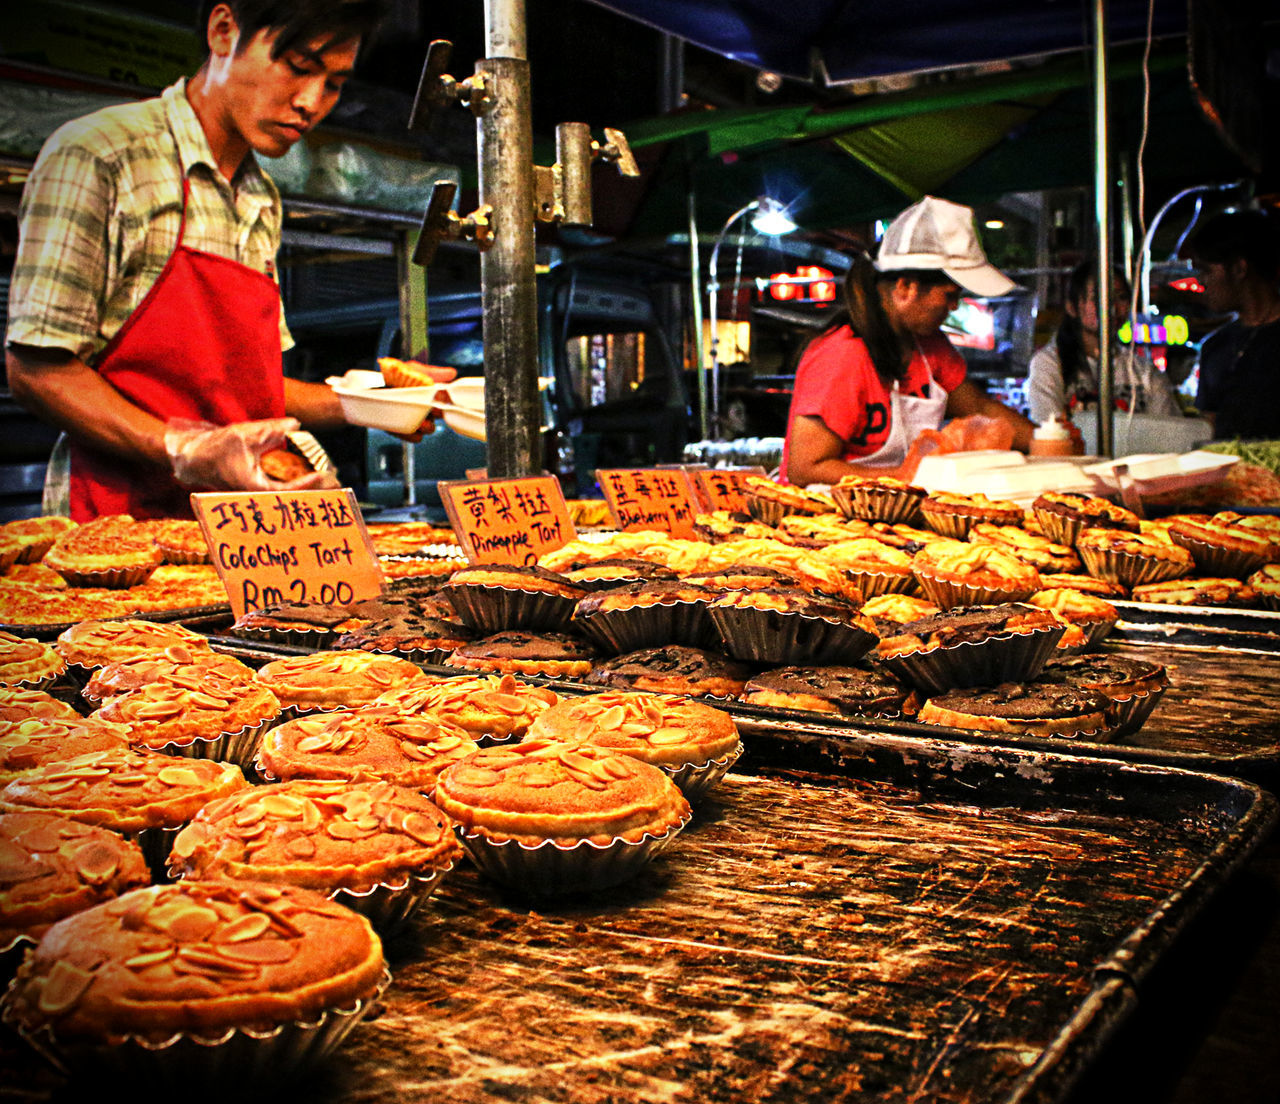 food and drink, food, for sale, freshness, retail, real people, market stall, market, men, small business, baked, choice, outdoors, occupation, sweet food, women, bakery, night, ready-to-eat, one person, people